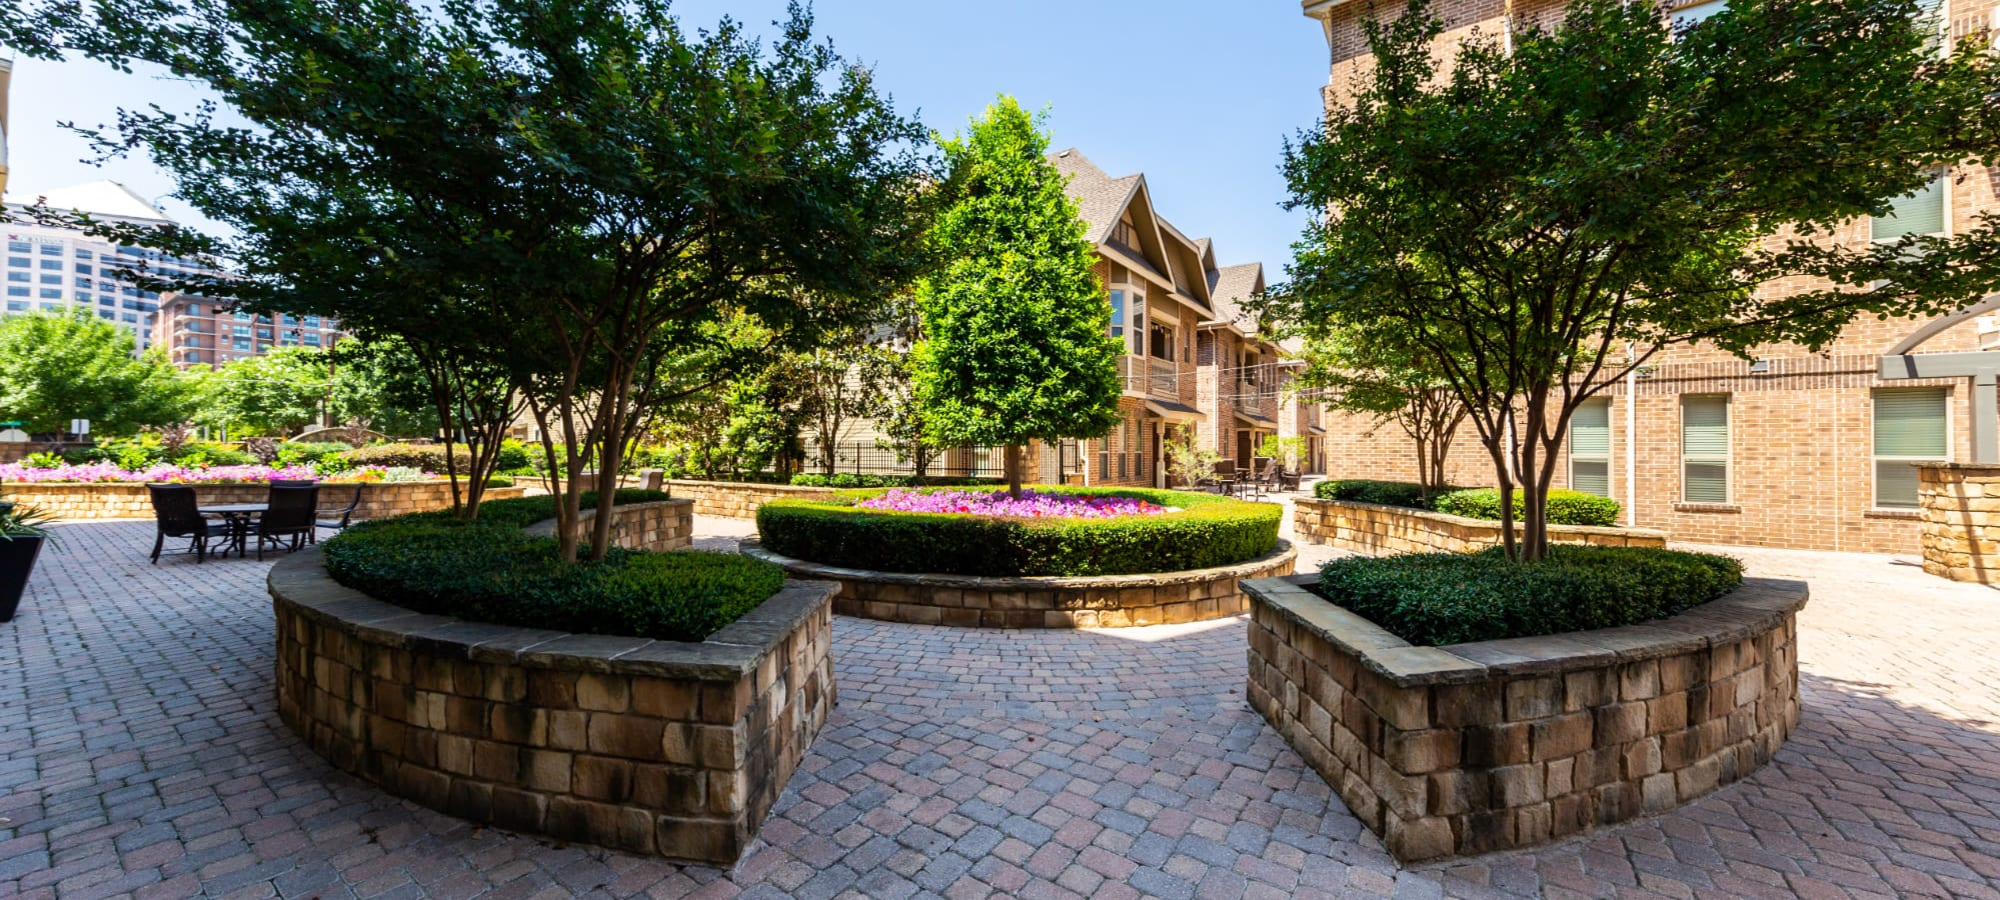 Schedule a tour of The Marquis of State Thomas in Dallas, Texas